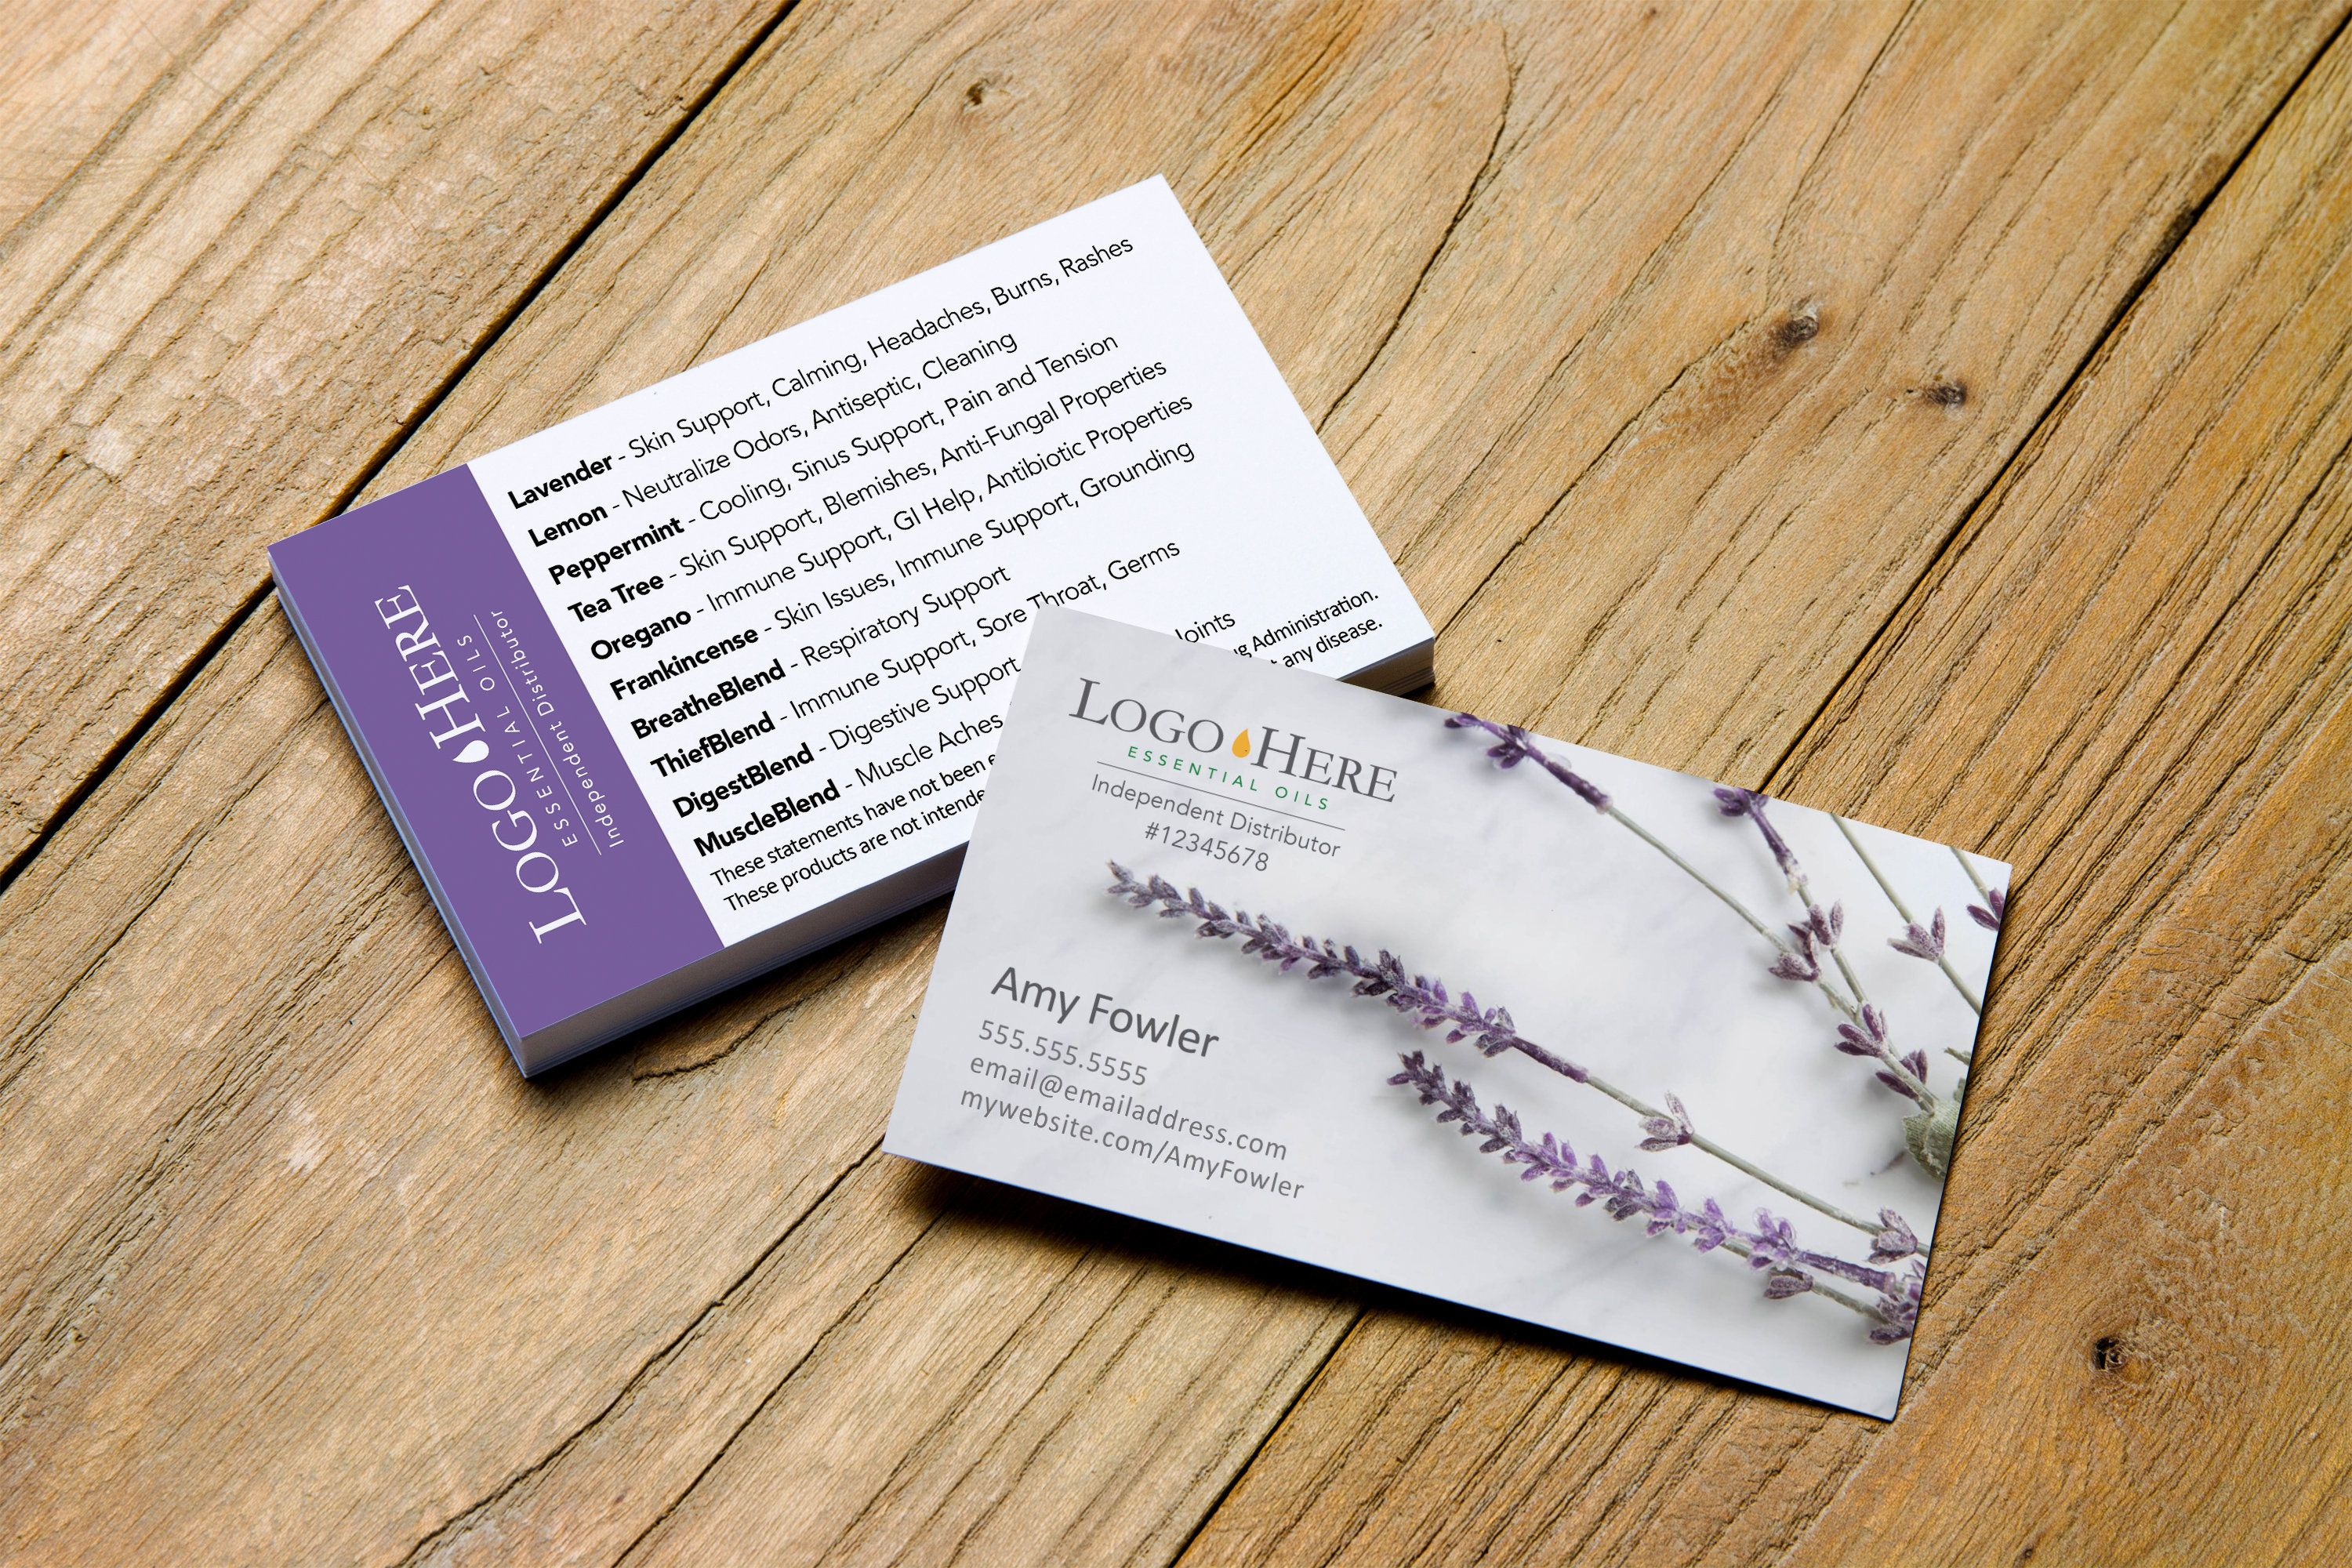 Top 10 Essential Oil Uses Lavender Business Card Design